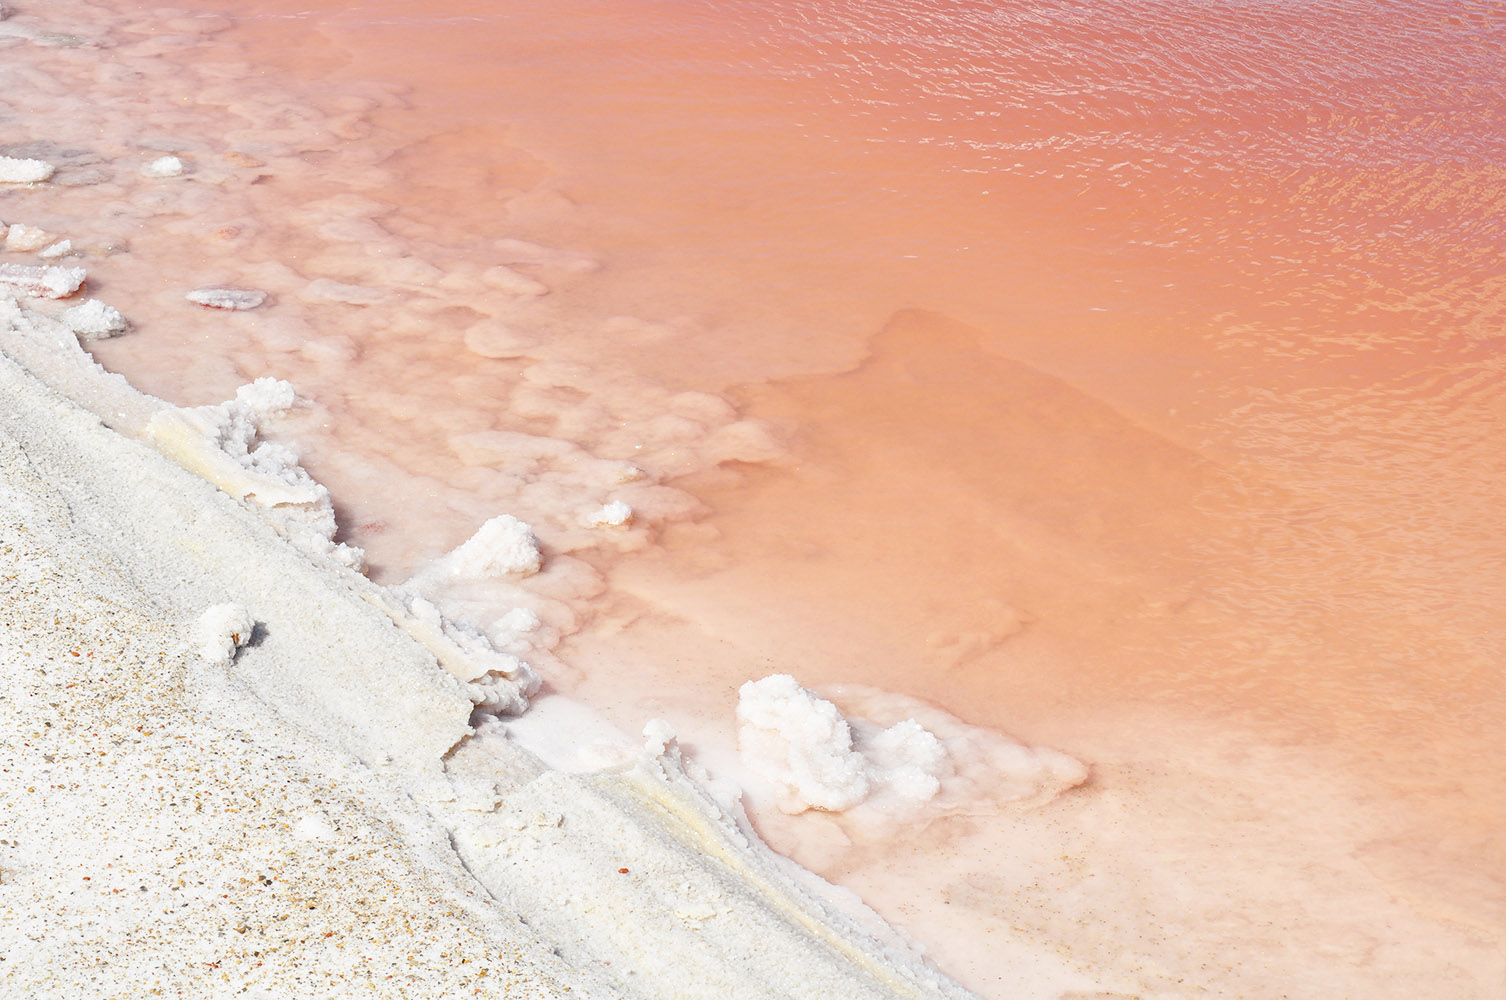 Salt fields  and red Algae in Salin de Giraud, part of  Karlijn Sibbel's continuing research and current workshops.